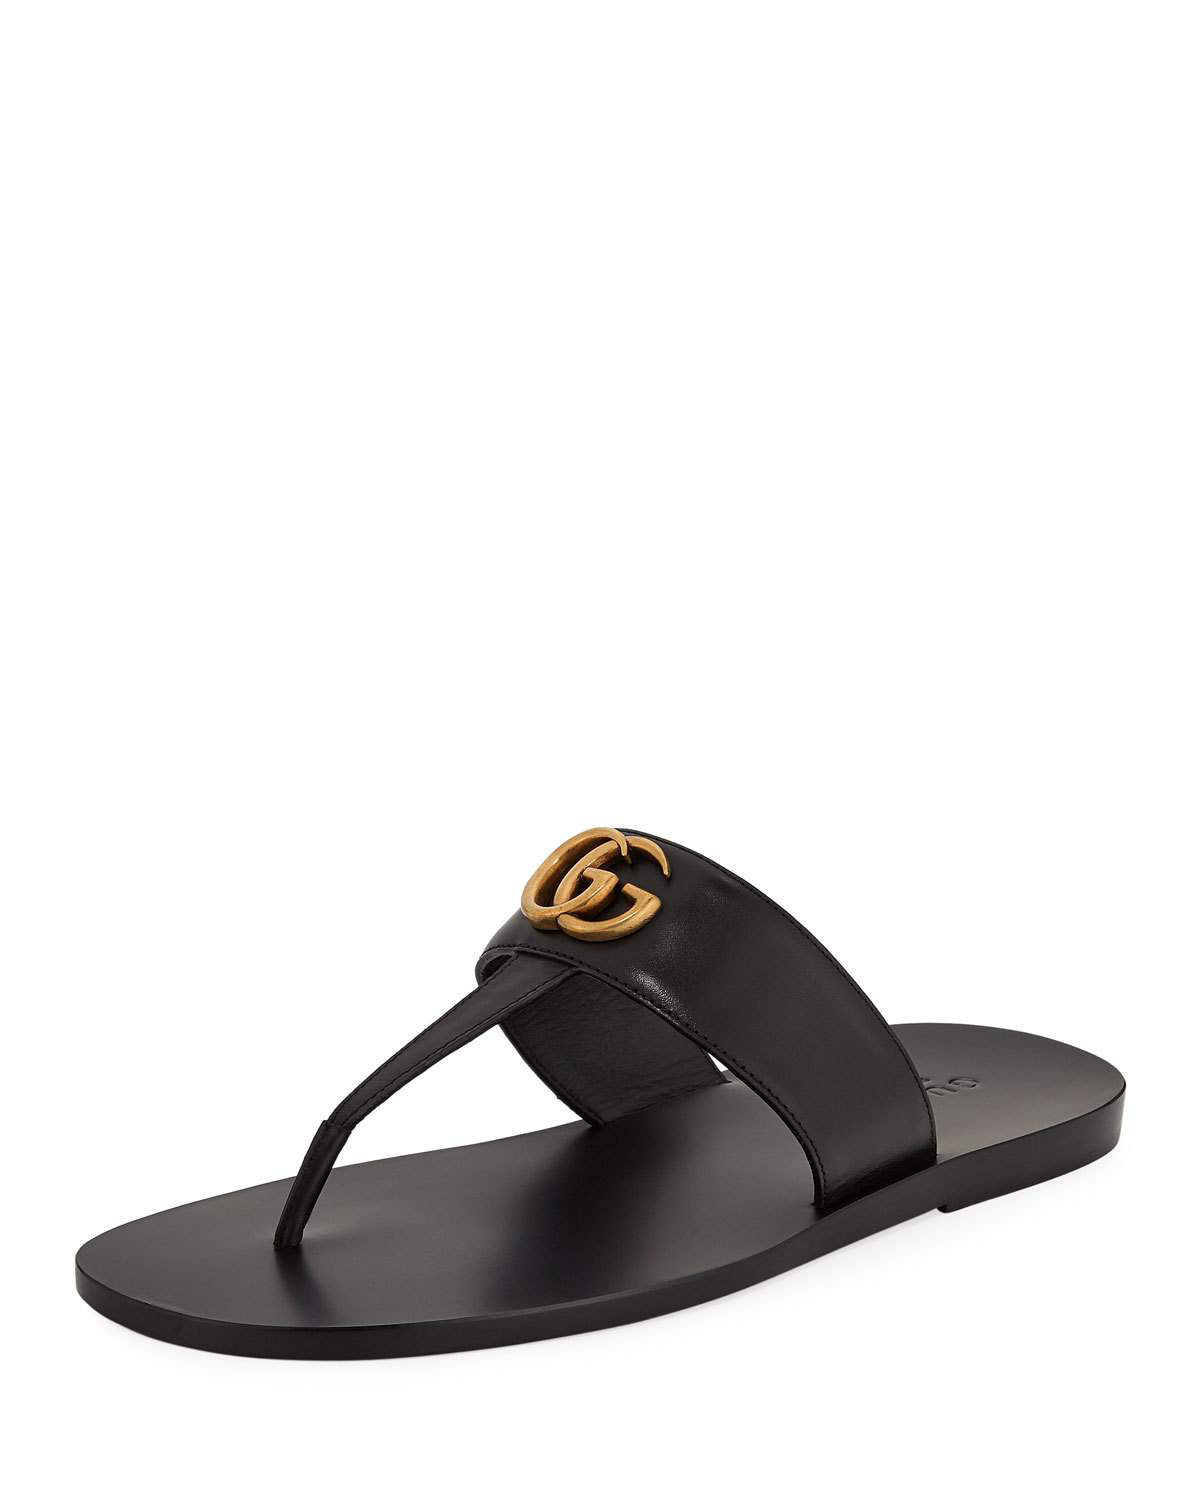 adb93be0d70e Gucci Marmont Double G Leather Thong Sandal In Black